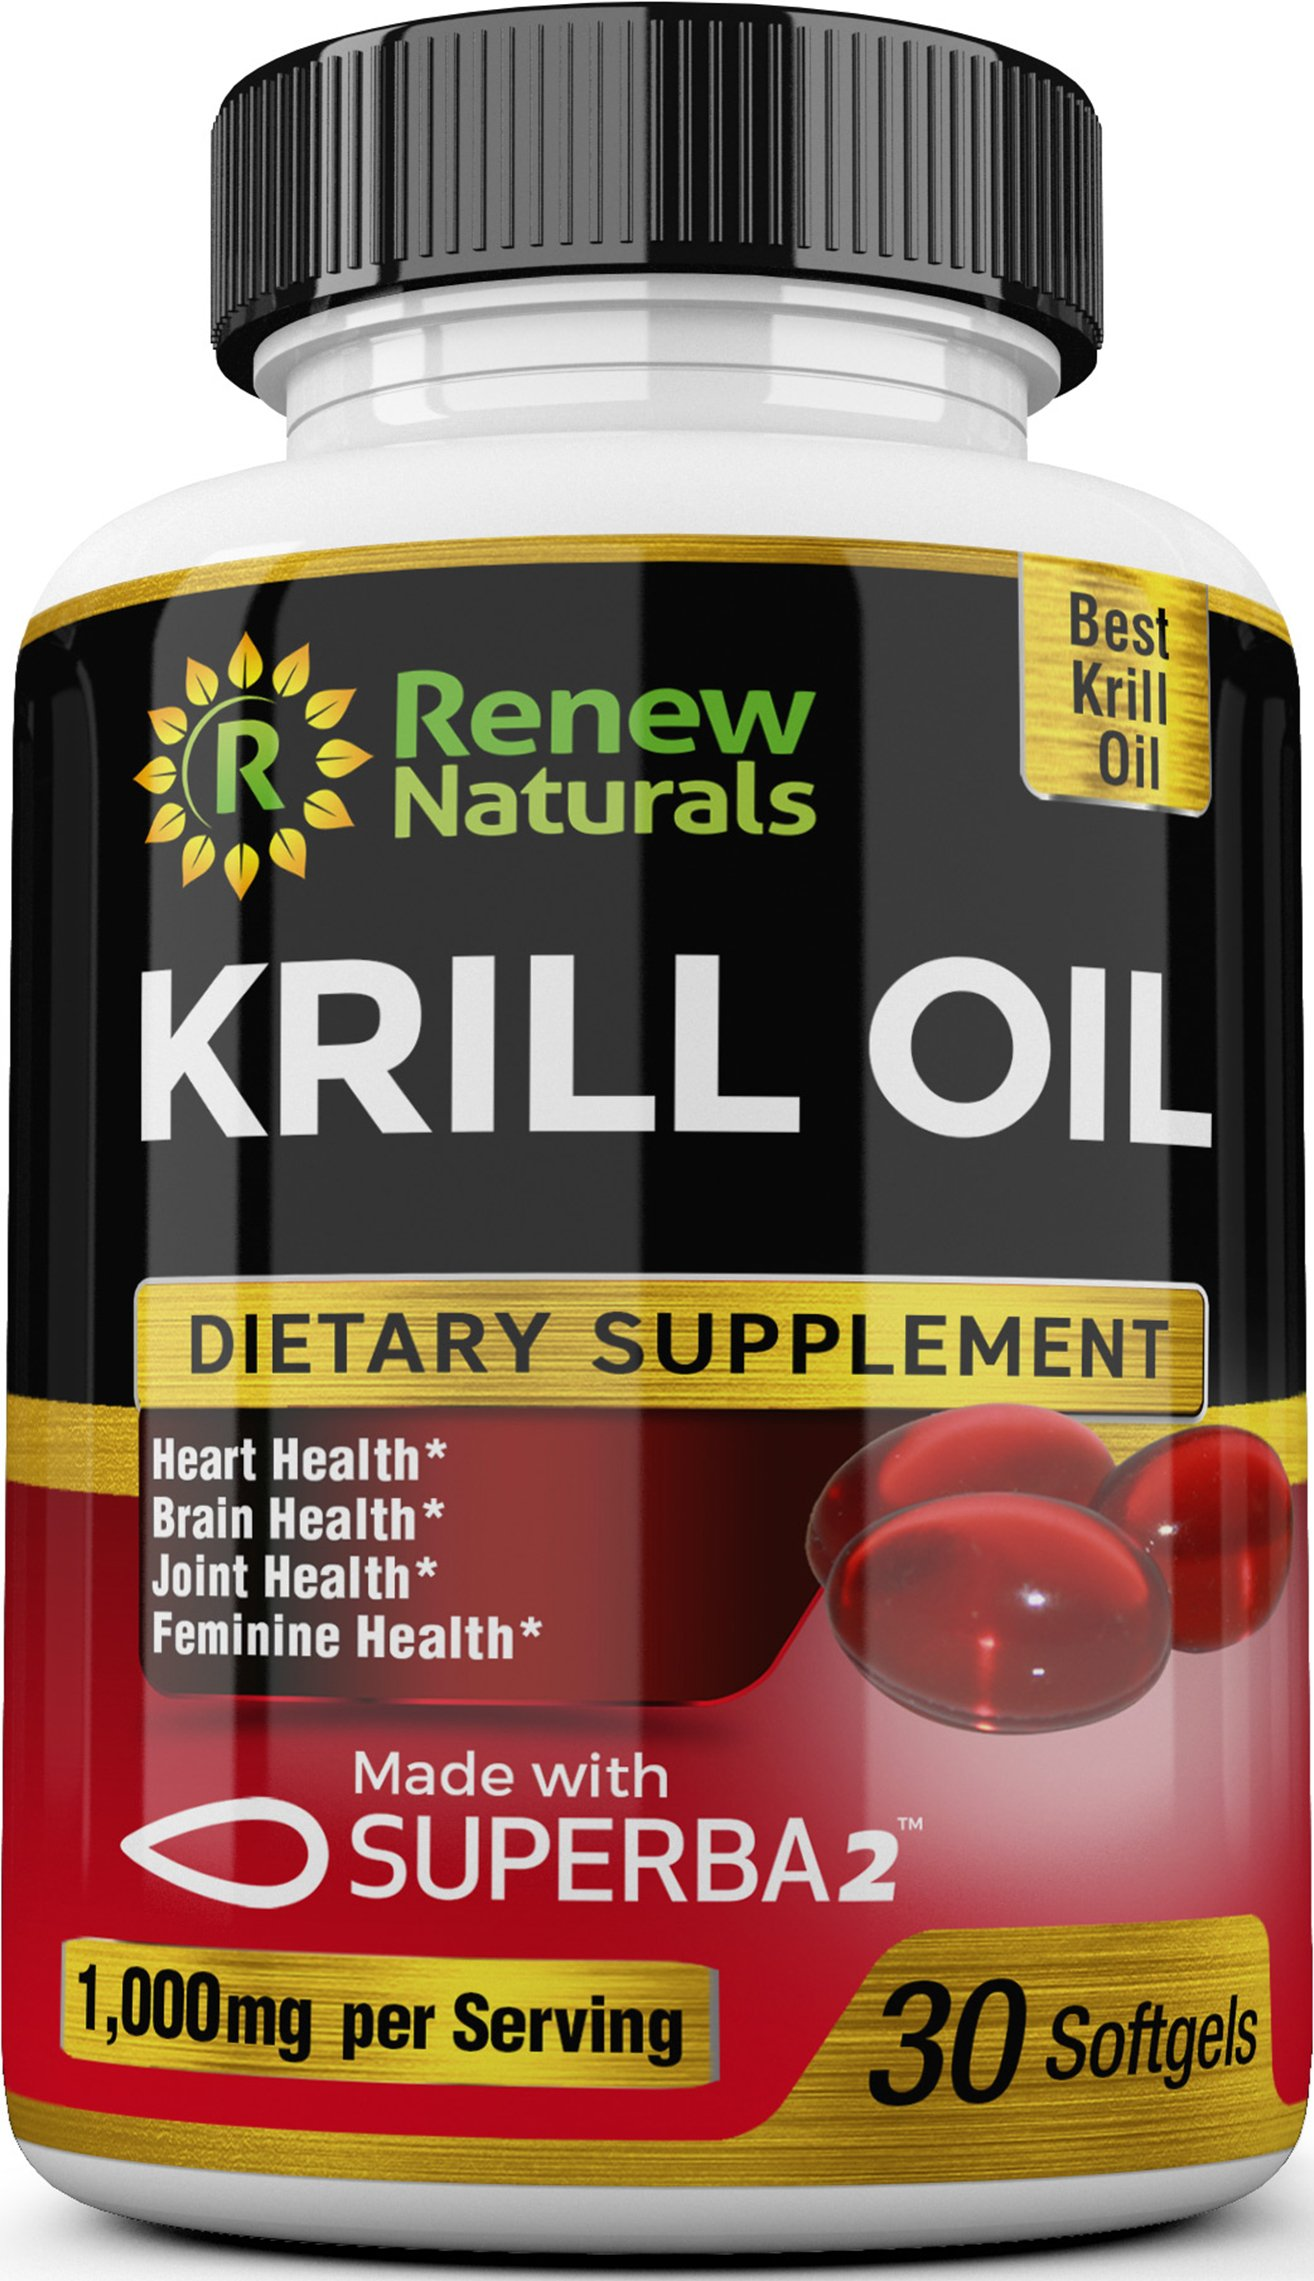 100% Pure Antarctic Krill Oil Capsules 1000mg Serving w/Astaxanthin - Supports Healthy Heart Brain Joints - Omega 3 Highest Quality Supplement - 30 Softgels. 100% Money Back Guarantee!